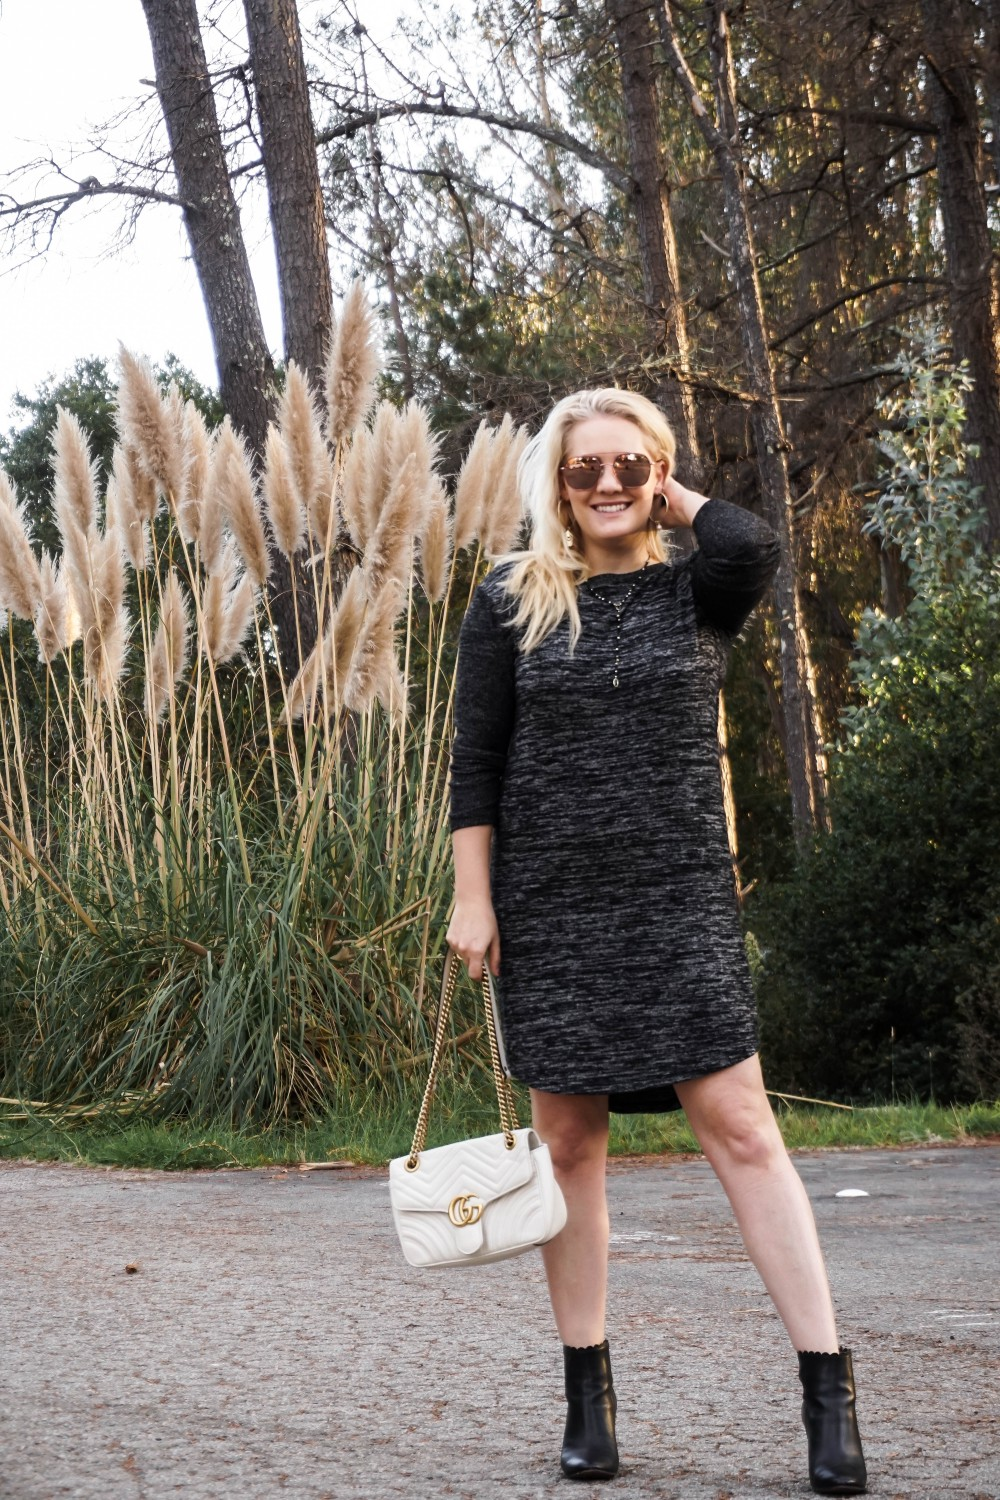 Easy Winter Outfit Wearing A Cozy Winter Knit Long Sleeve Dress - Have Need Want